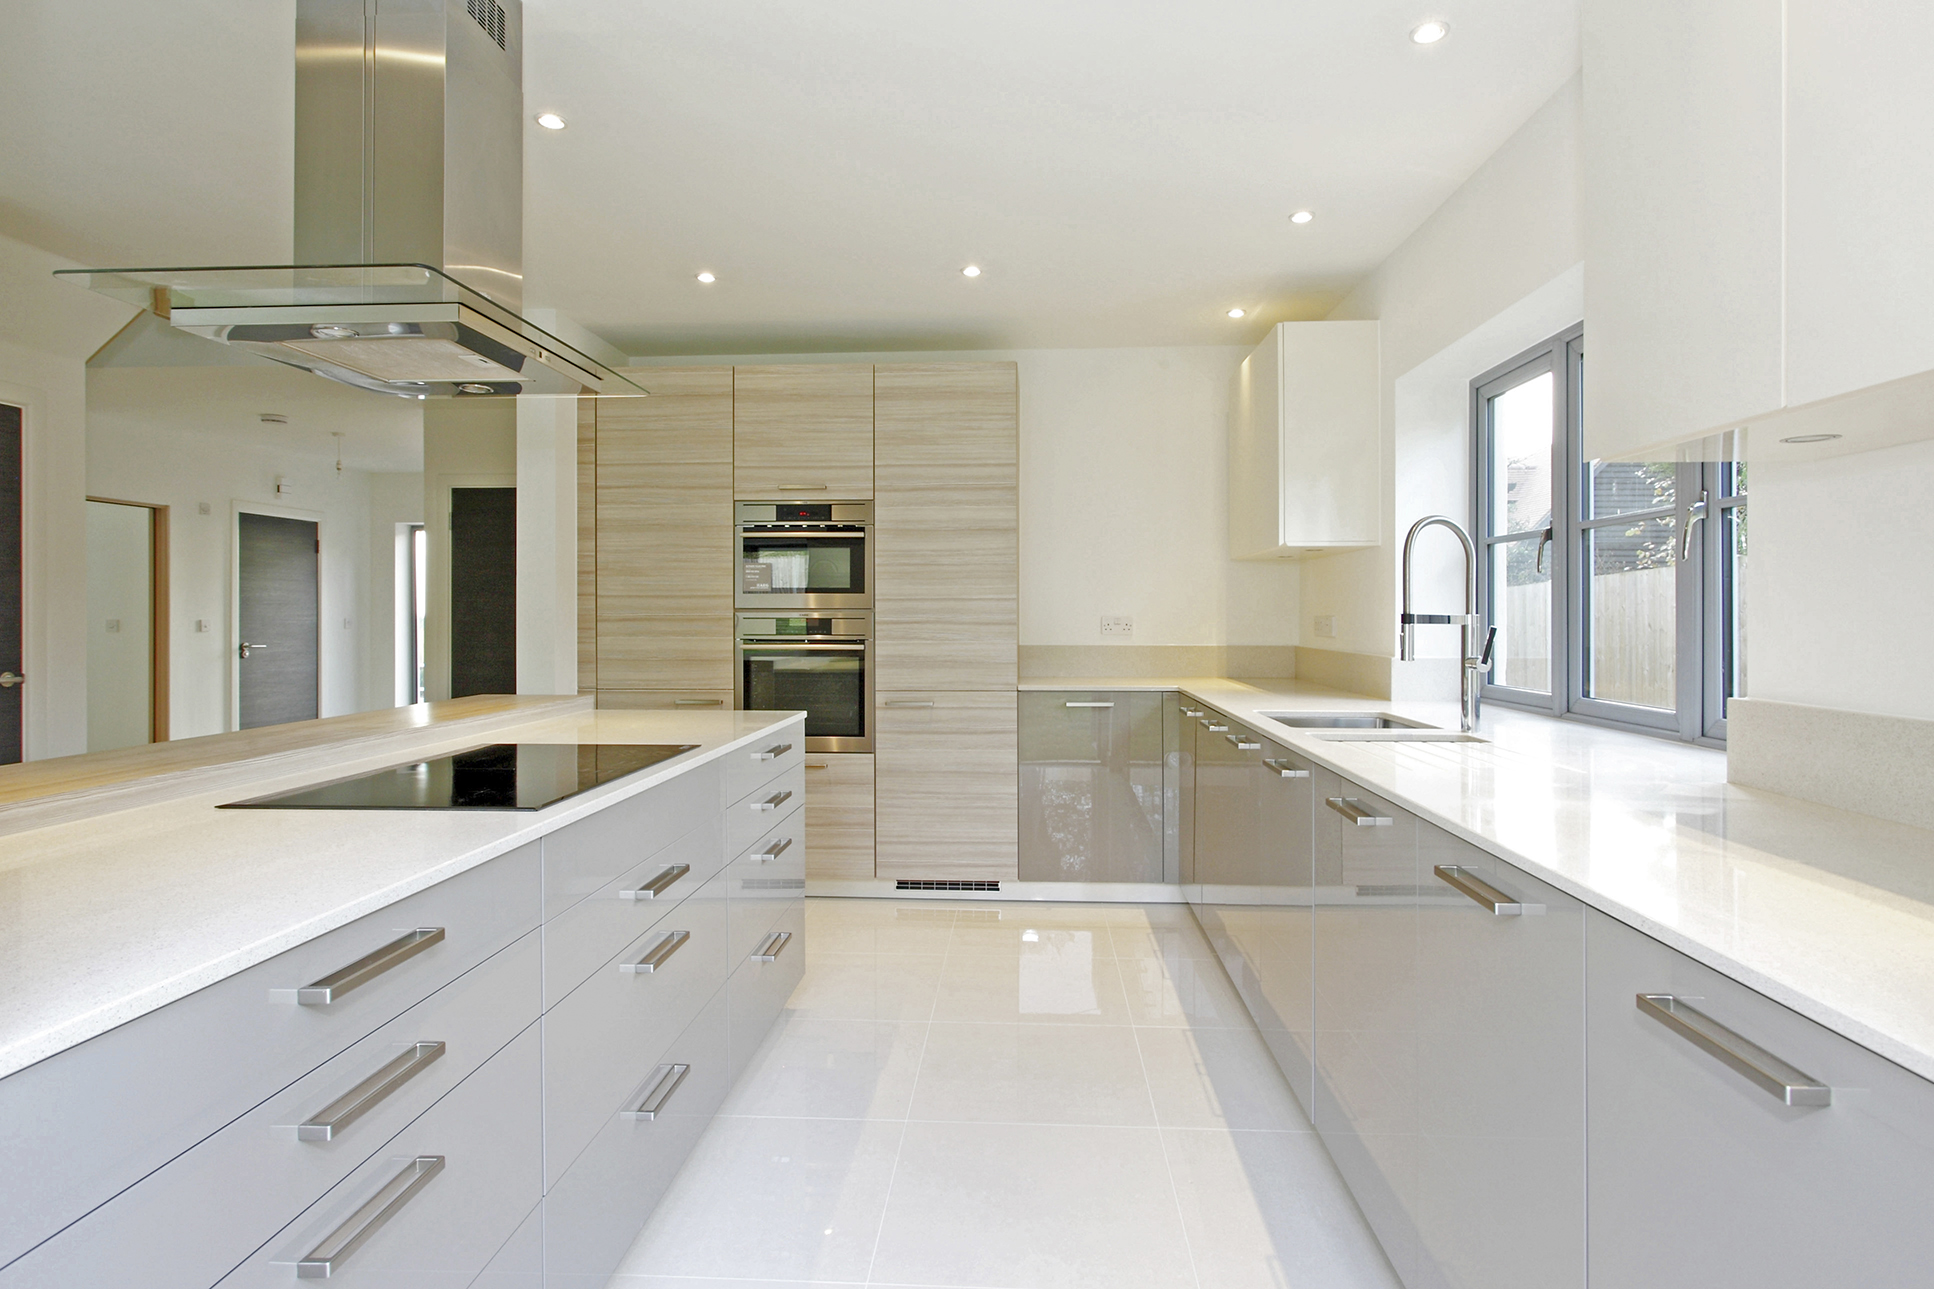 Beautiful handmade kitchen, including Silestone worktops and porcelain tile flooring. Kitchen integrates Neff appliances and instant boil tap.